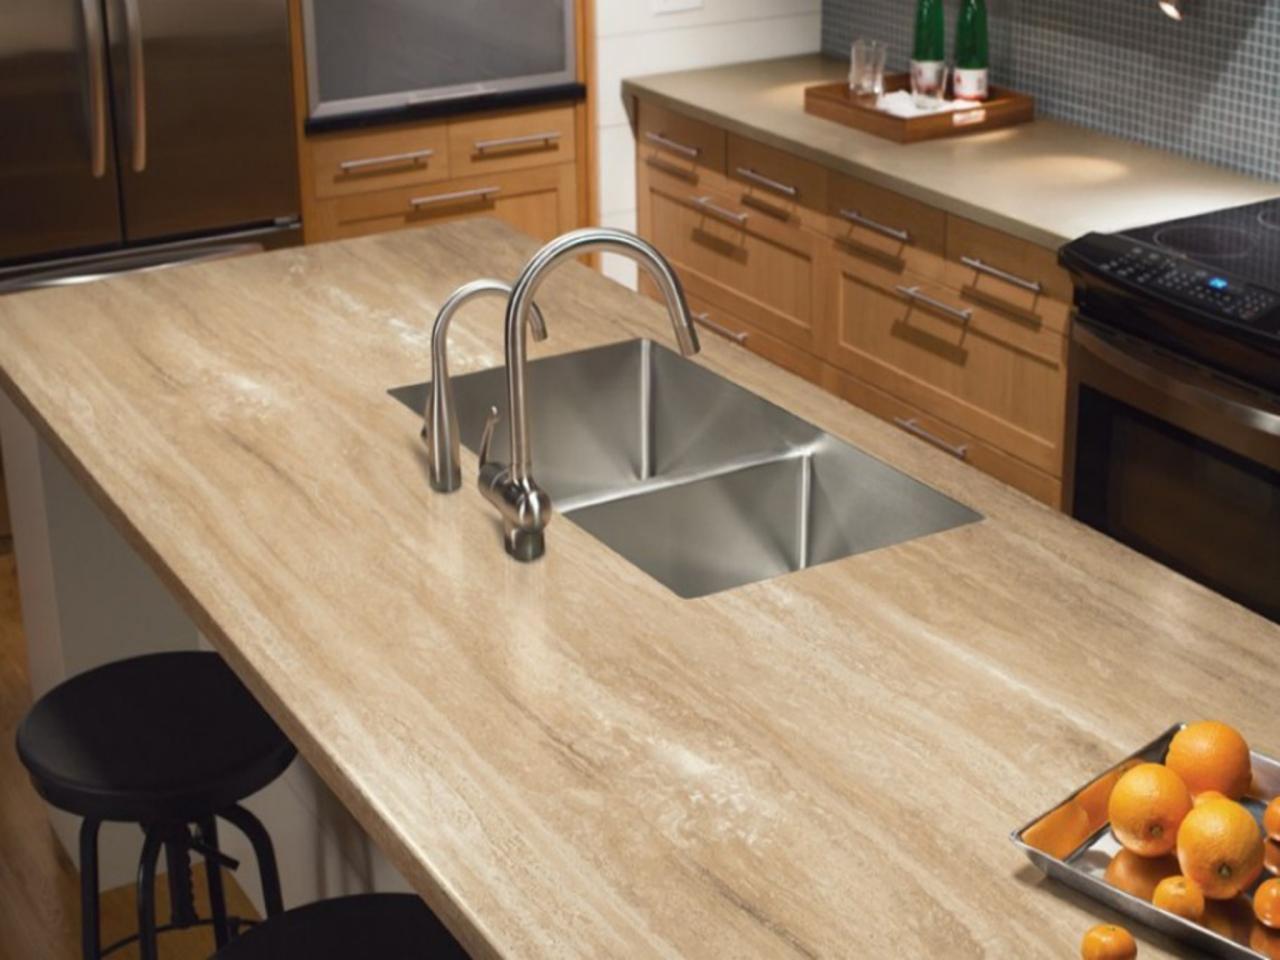 Cheap kitchen countertops pictures ideas from hgtv hgtv for Looking for kitchen